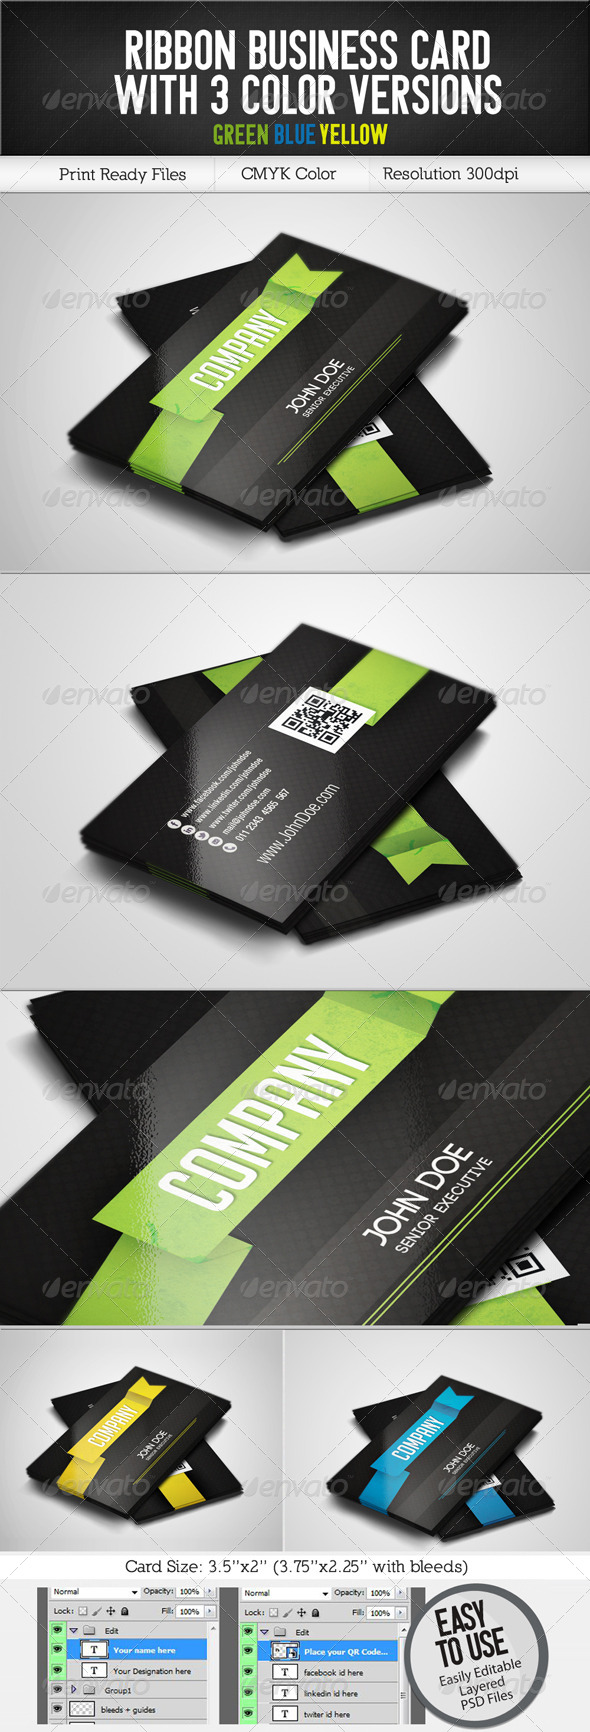 GraphicRiver Ribbon Business Card 3 color versions 5478720